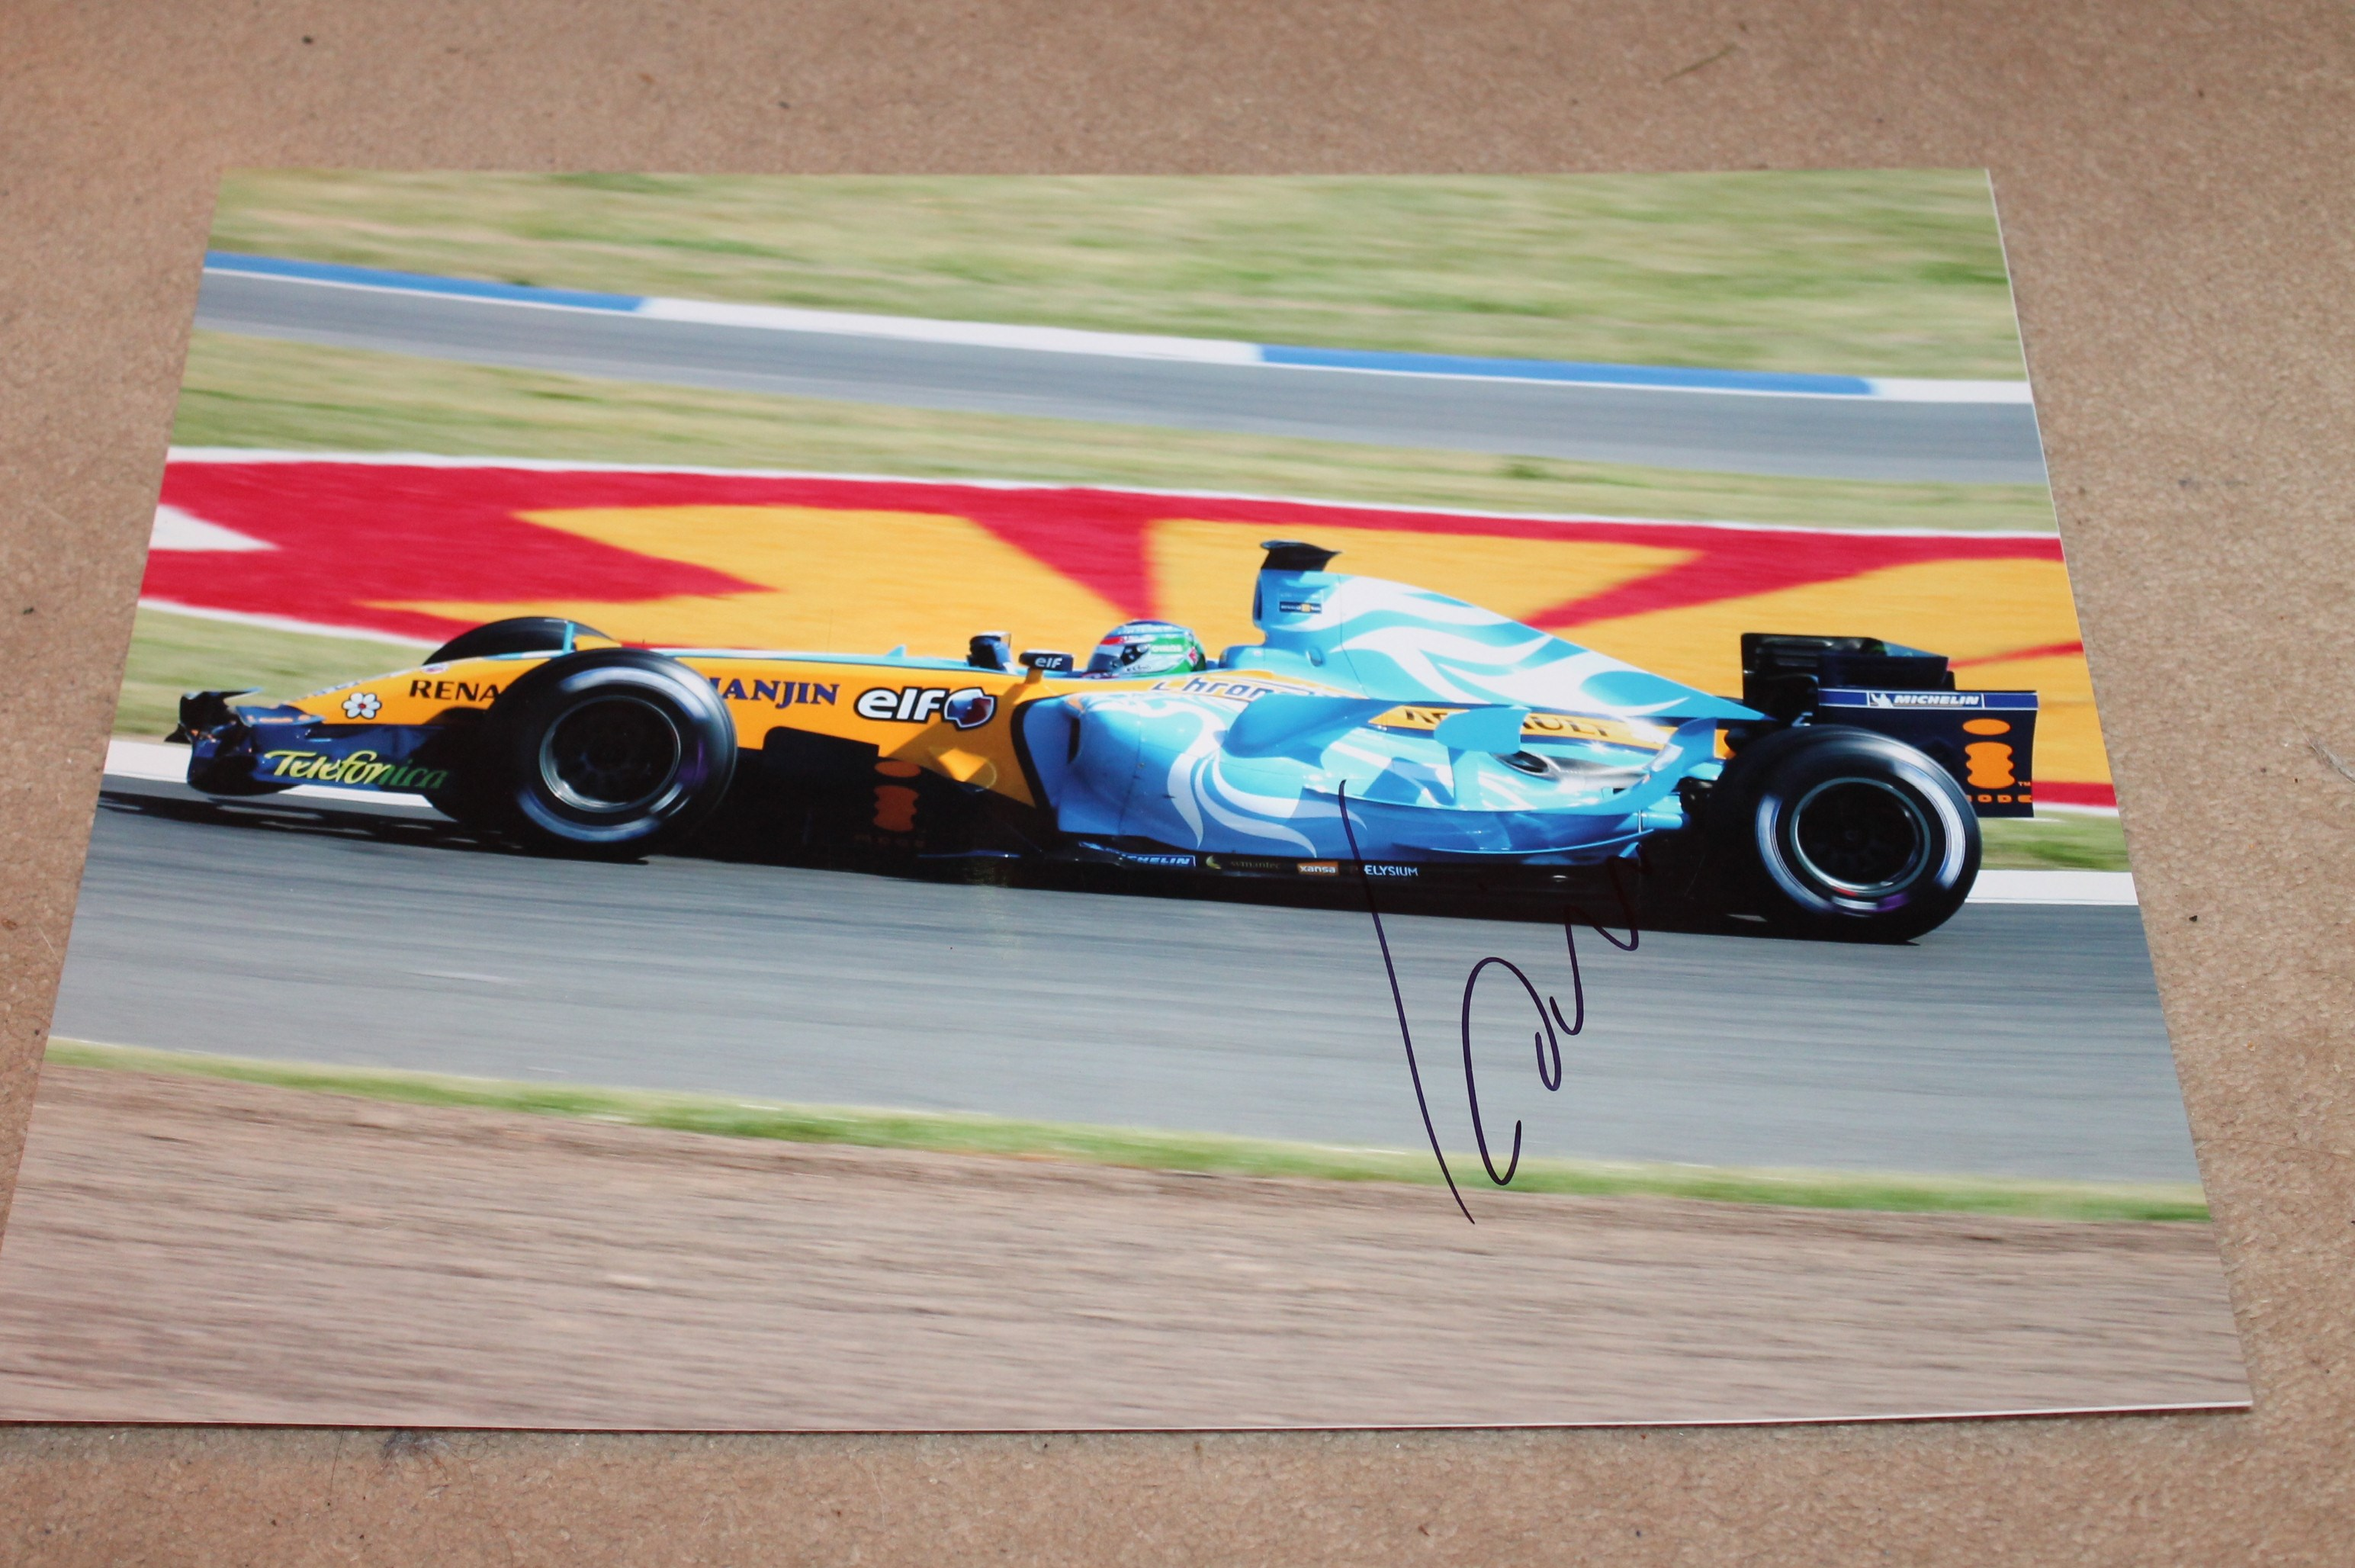 G. FISICHELLA SIGNED RENAULT PICTURE